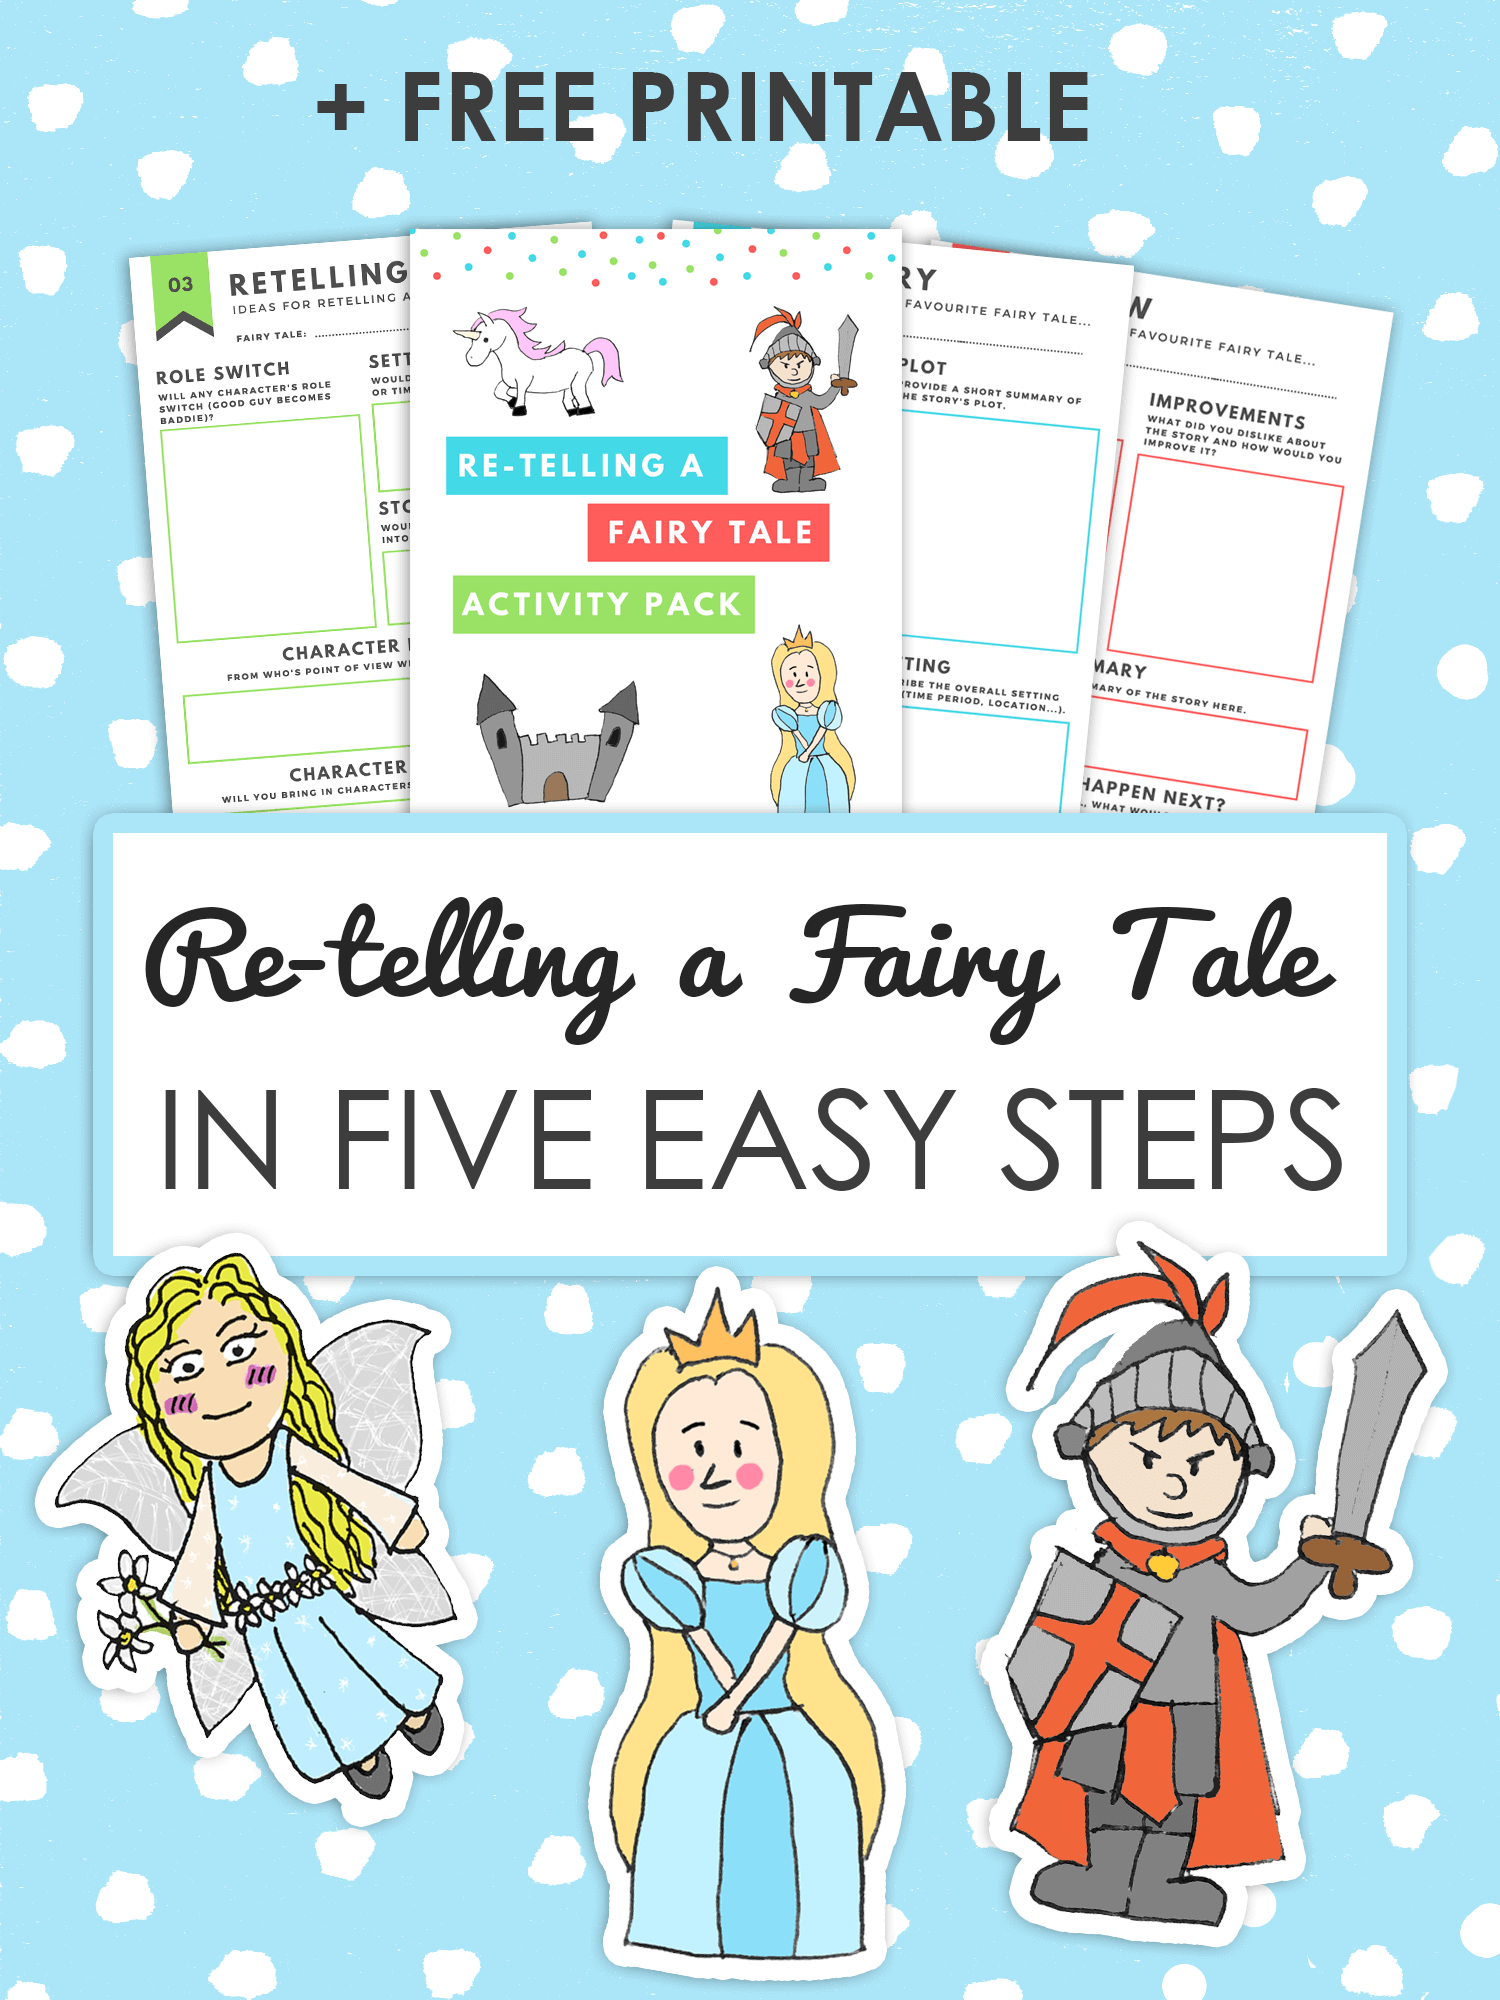 How to Retell a Fairy tale in Five Easy Steps imagine forest